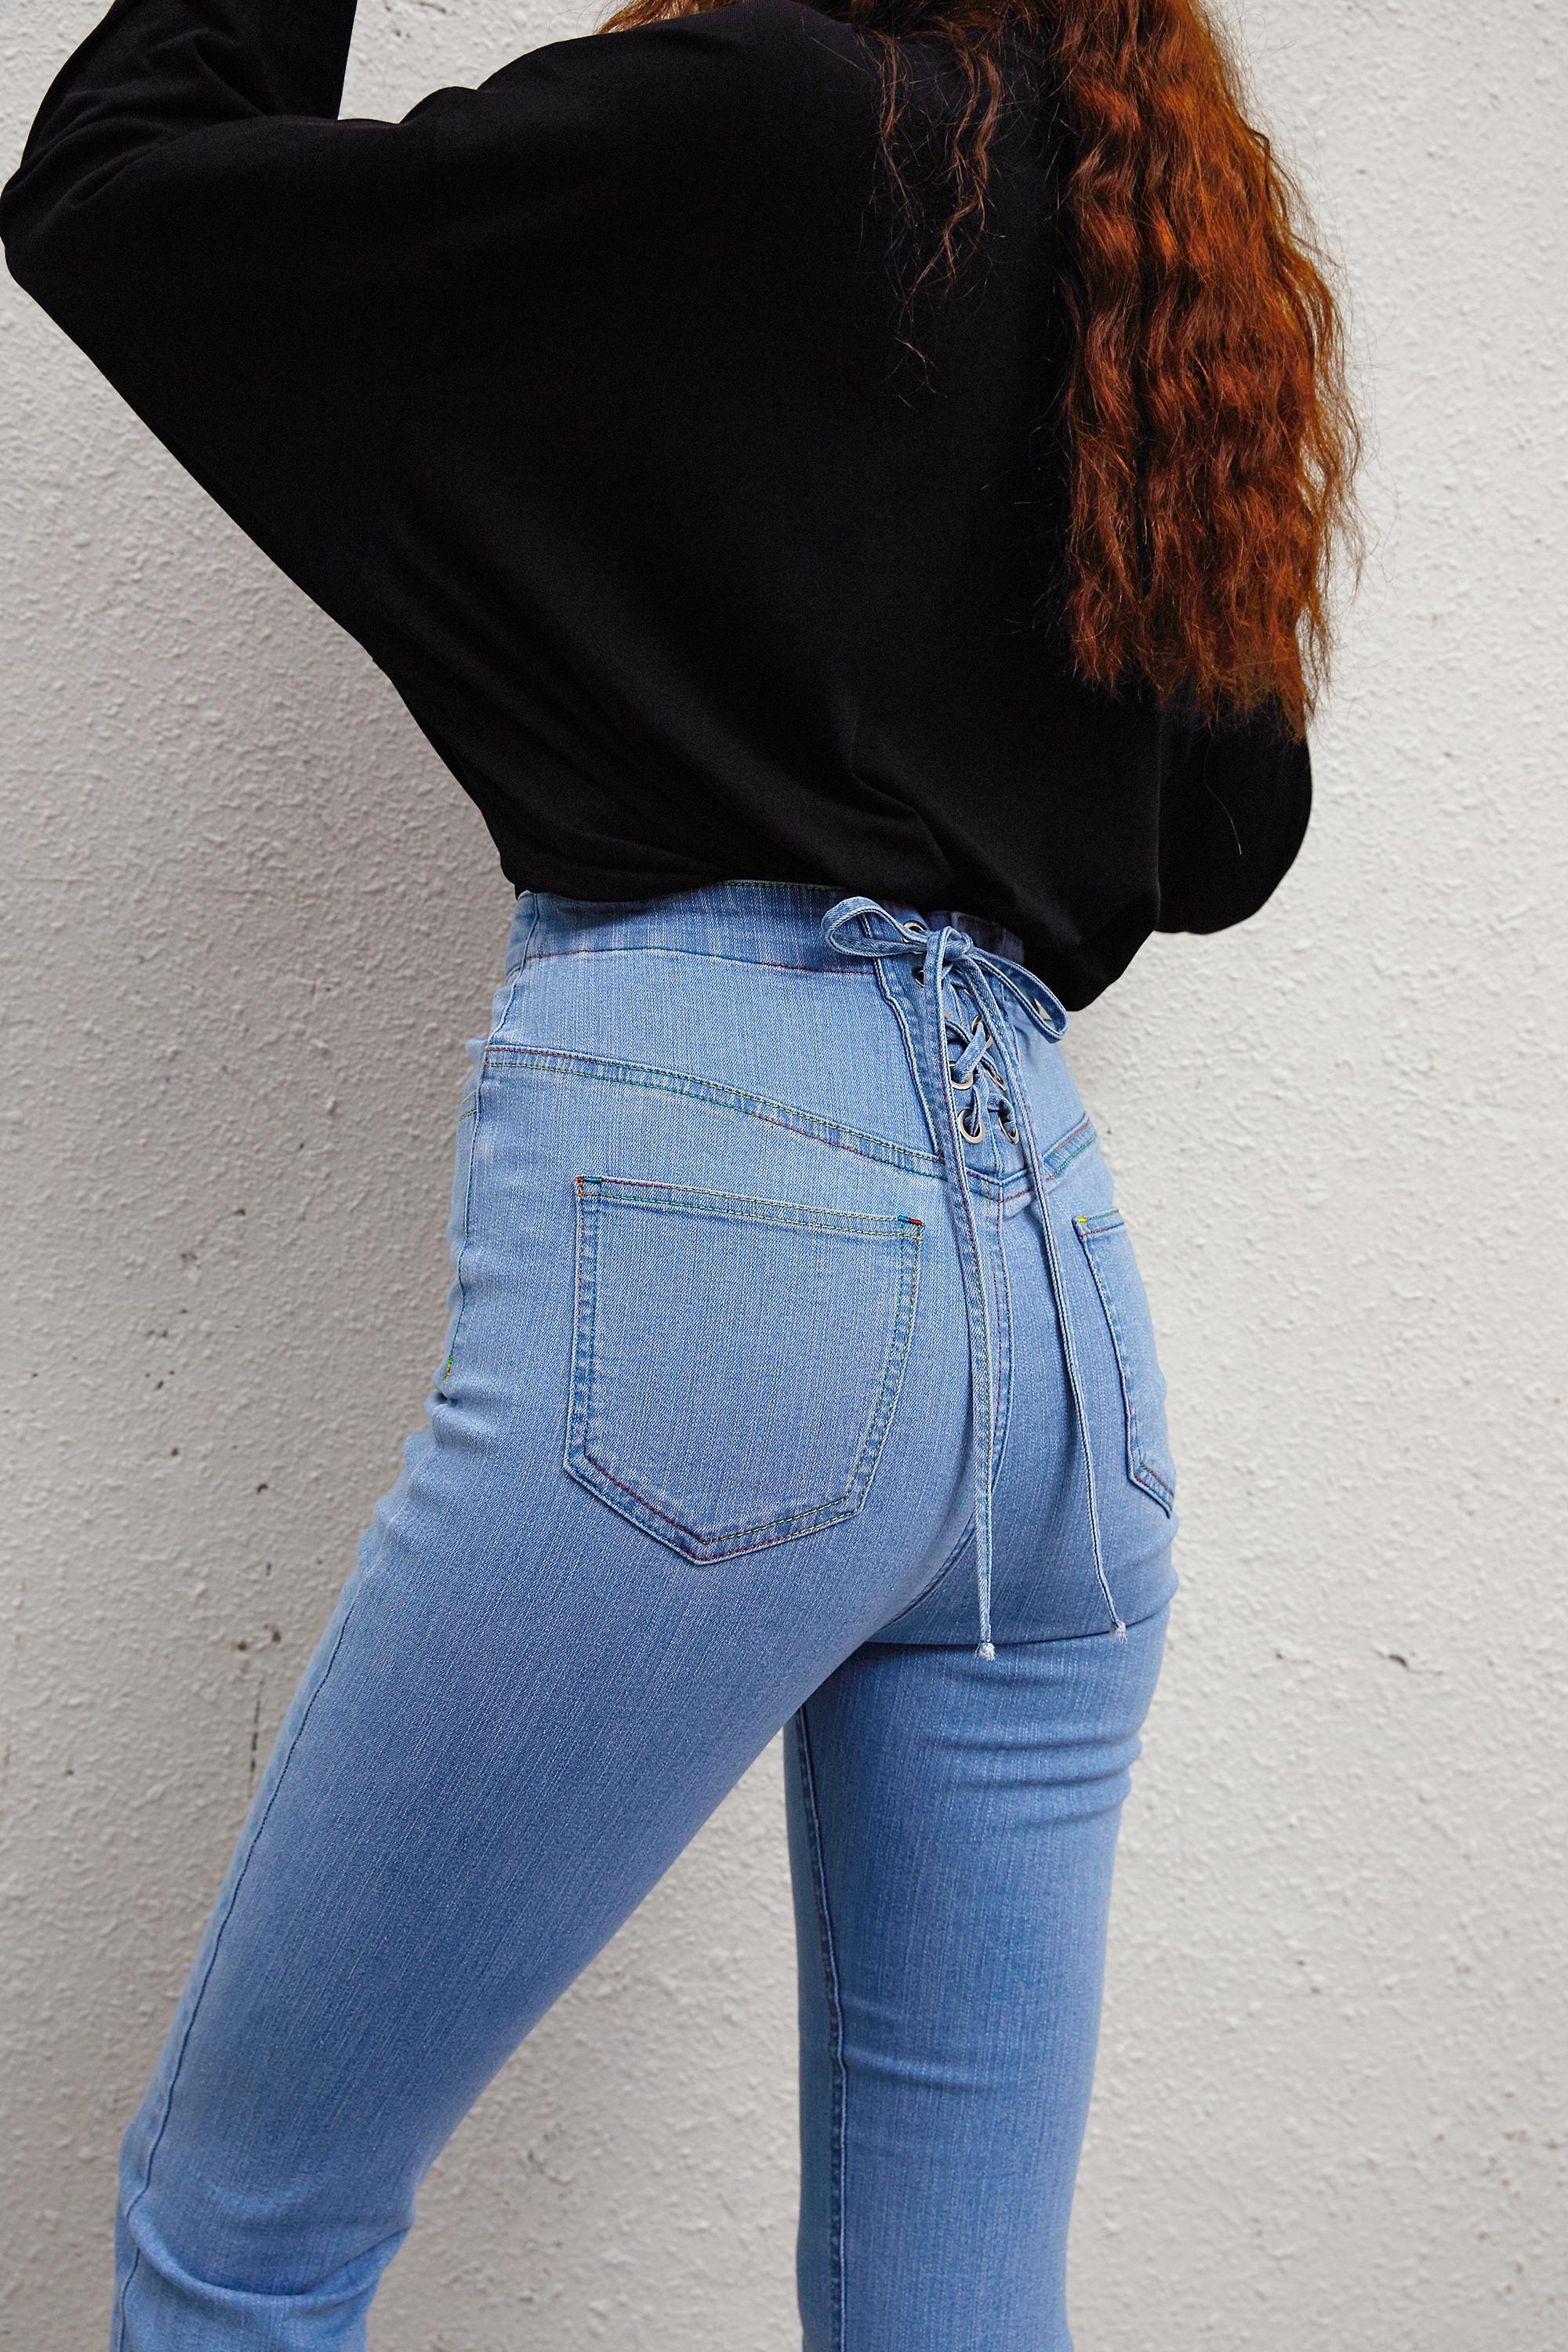 AUTUMN HIGH WAIST SKINNY JEANS-Cosmique Studio-aesthetic-clothing-store